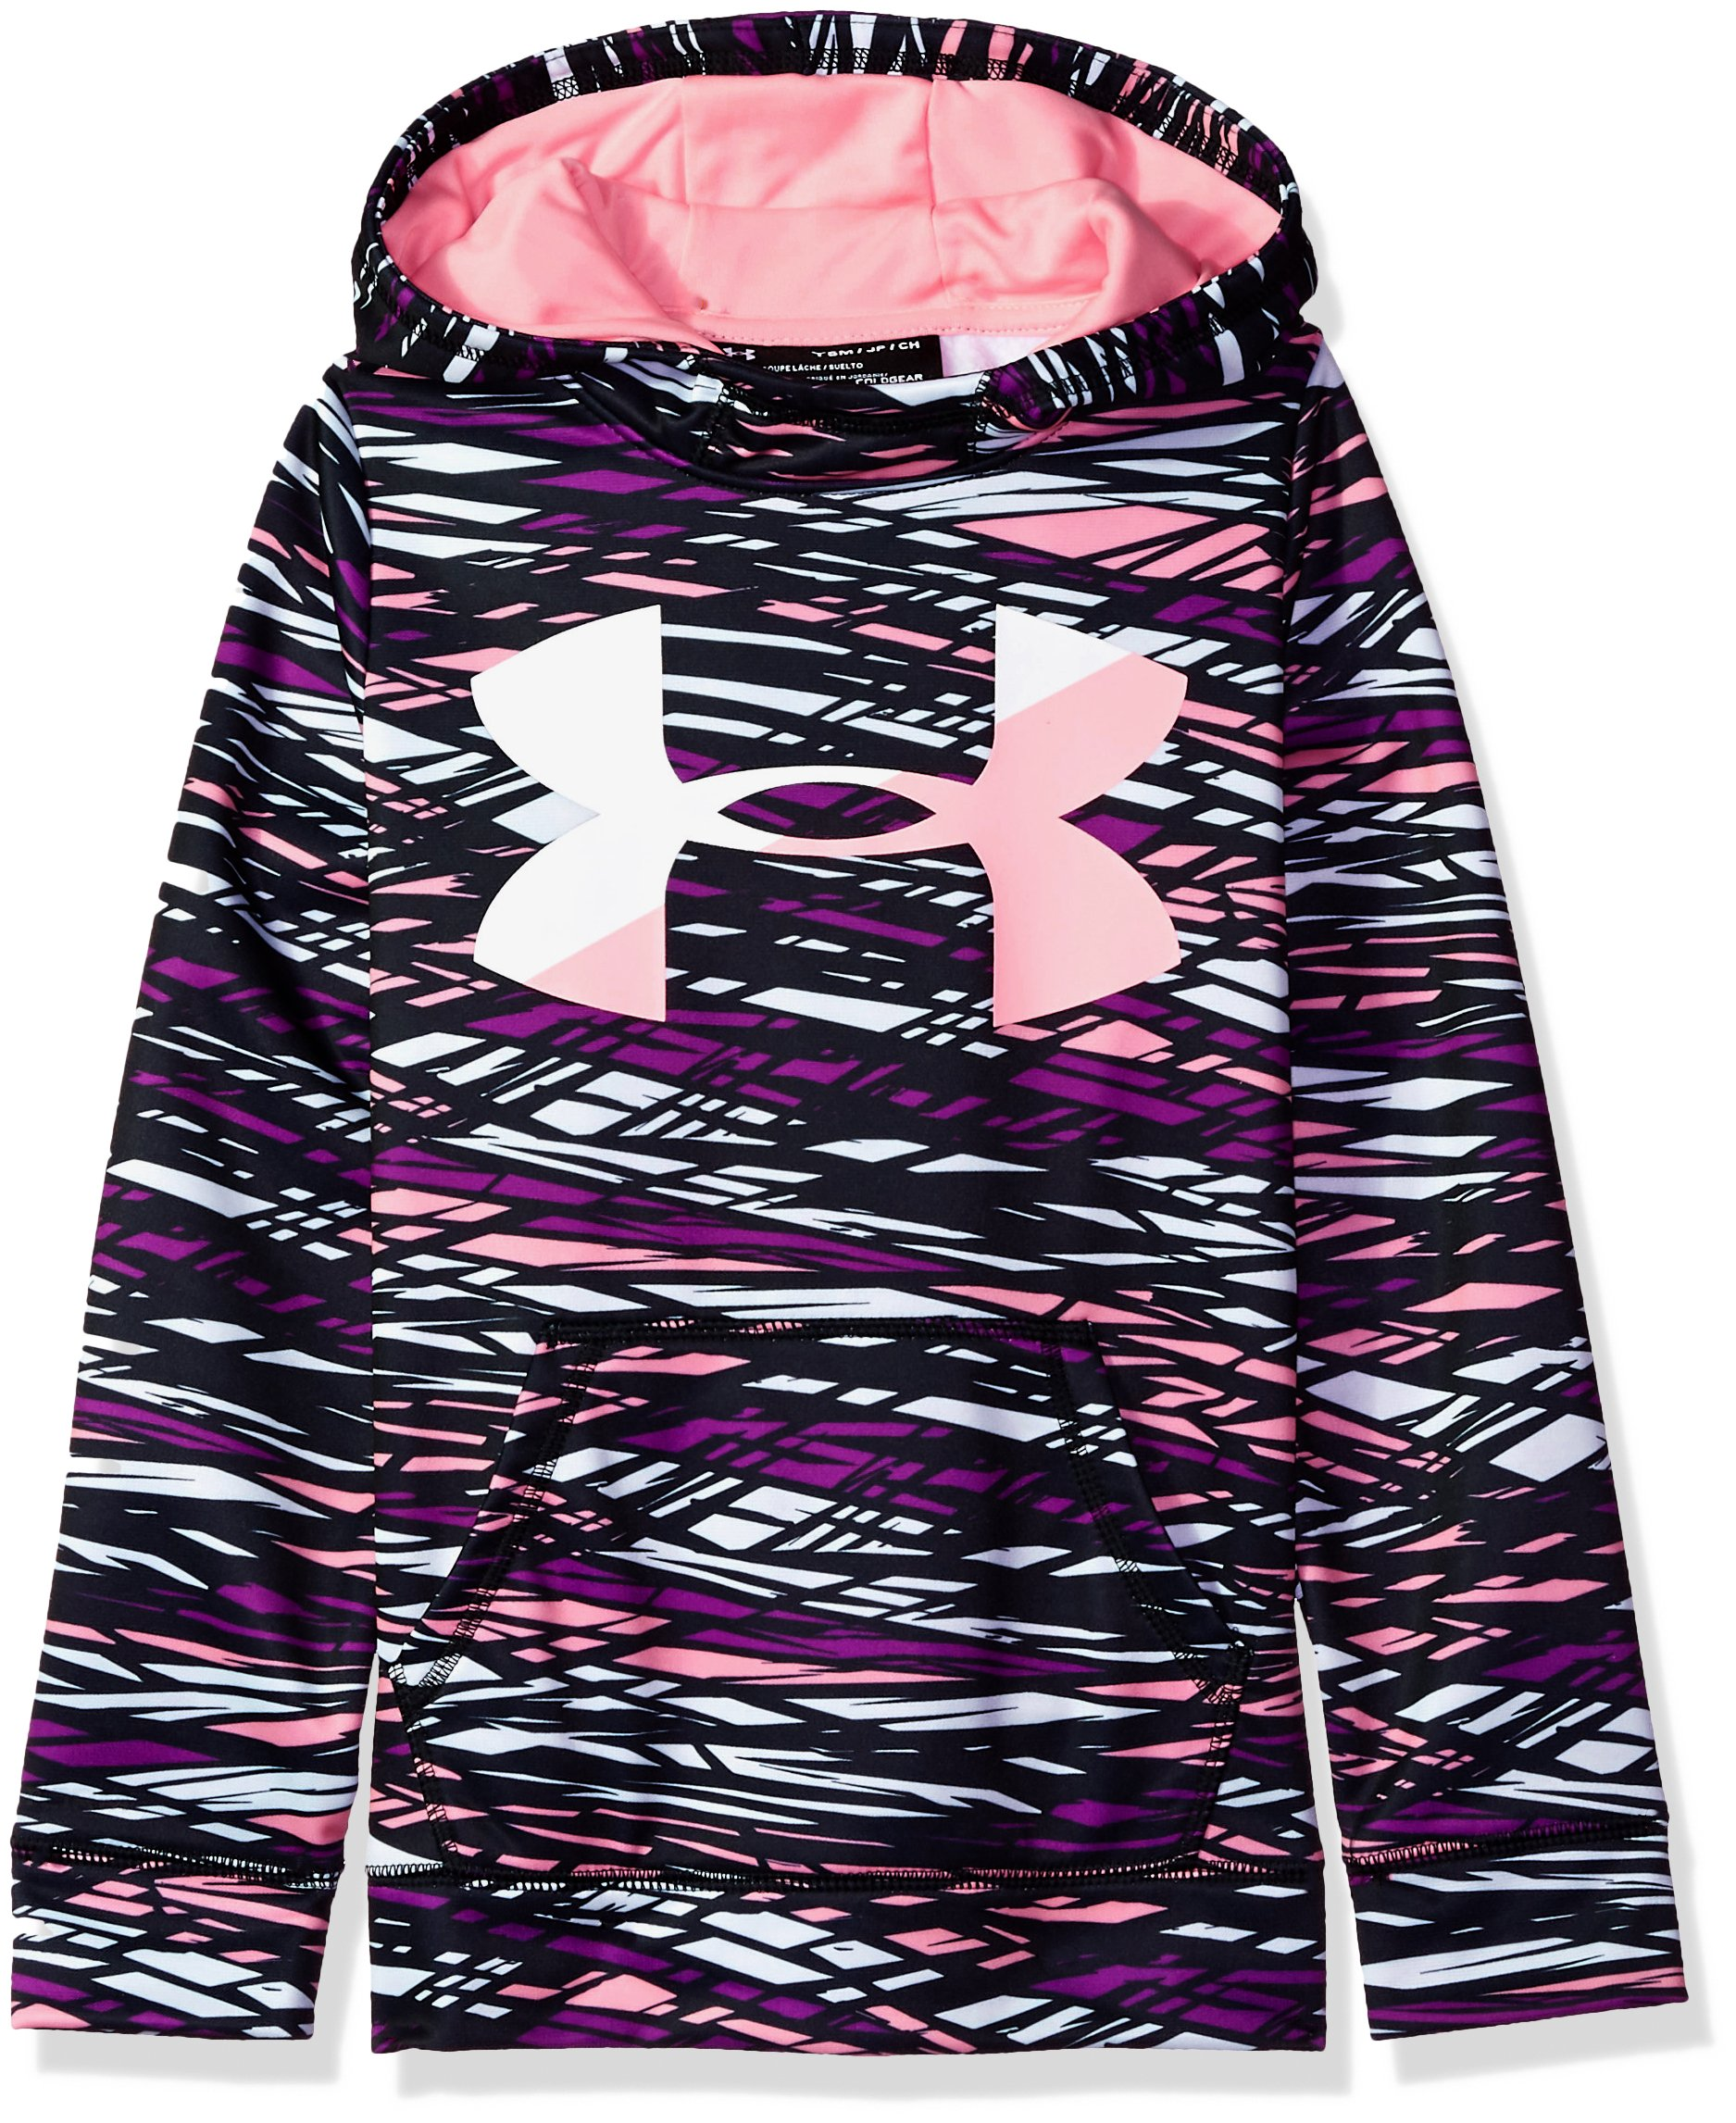 Under Armour Girls' Armour Fleece Big Logo Novelty Hoodie,Purple Rave /Pop Pink, Youth X-Small